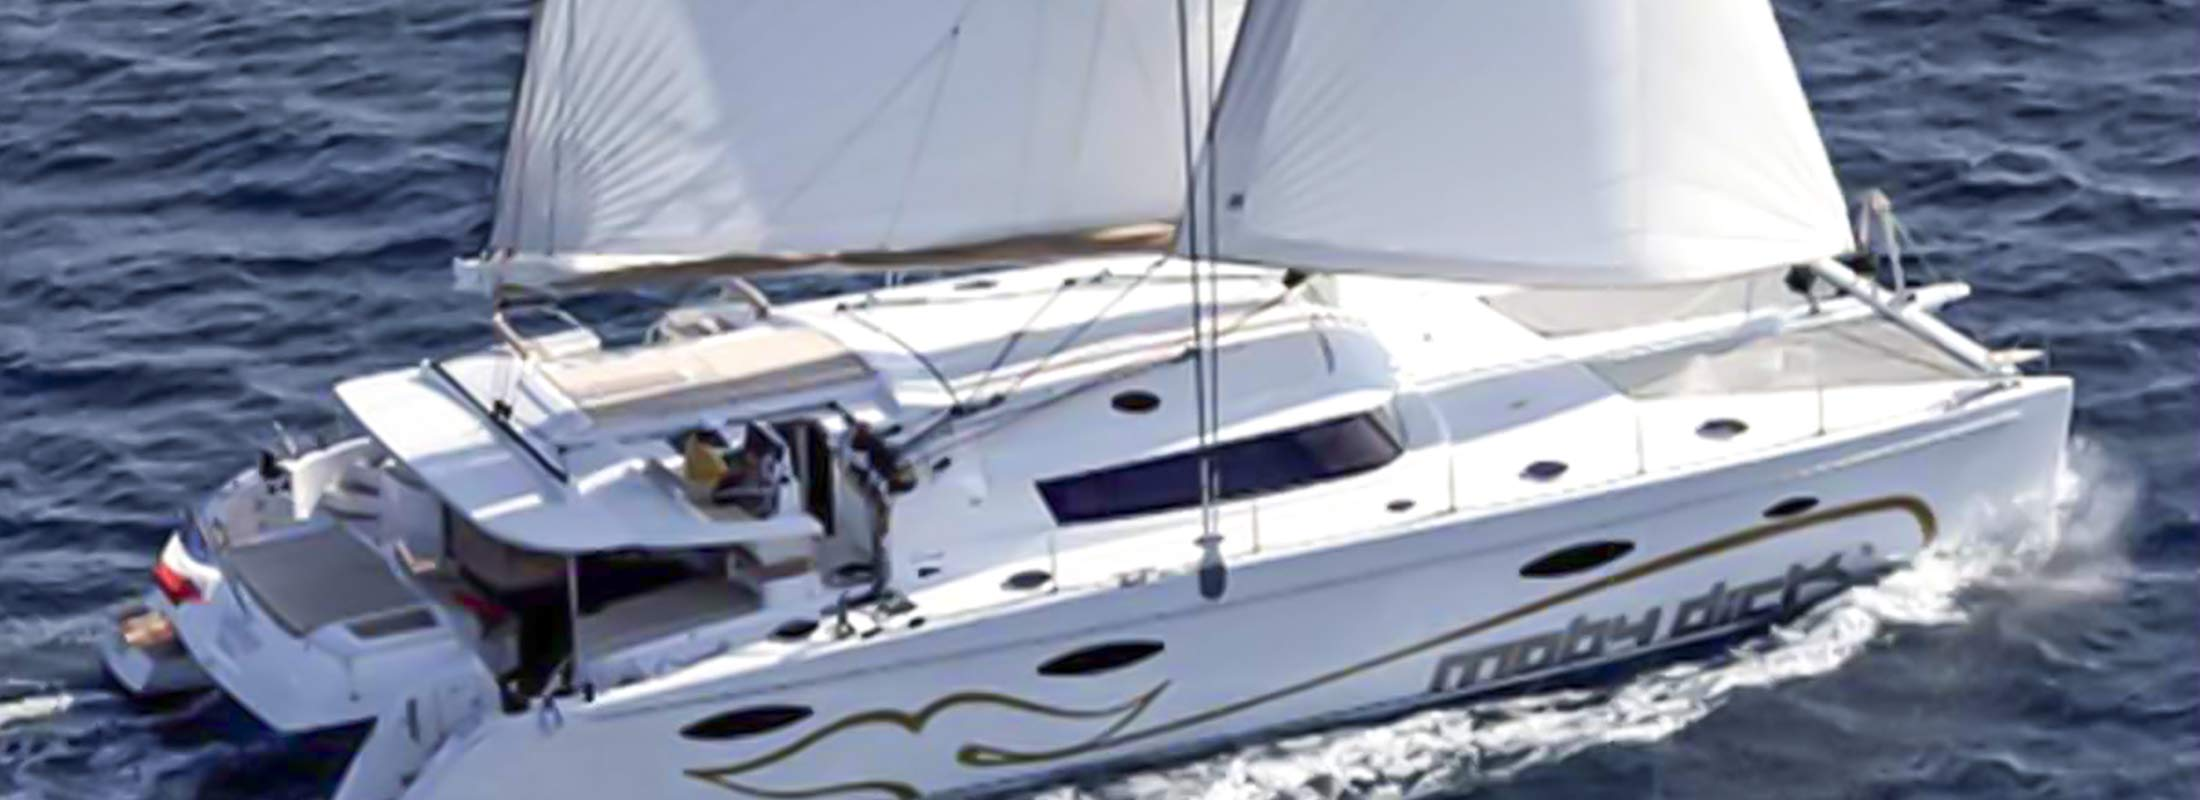 Moby Dick Sailing Yacht for Charter Mediterranean slider 1